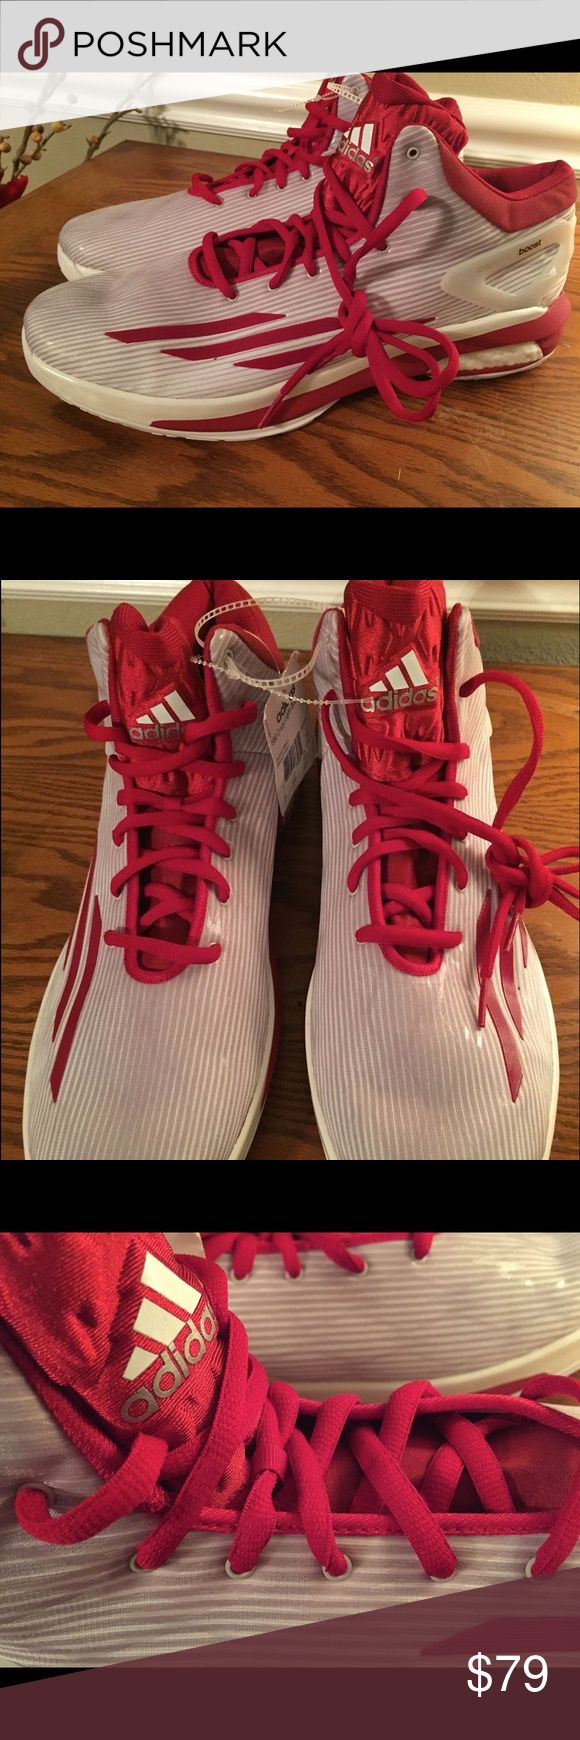 Adidas Crazylight Boost Basketball 🏀 Shoes Sz. 18 Men's size 18 Crazylight Boost Basketball 🏀 shoes. Red and white. S84629. Great shoe with great reviews online. Built for stability in the court. Designed for foot comfort and less foot stress. Adidas Shoes Athletic Shoes